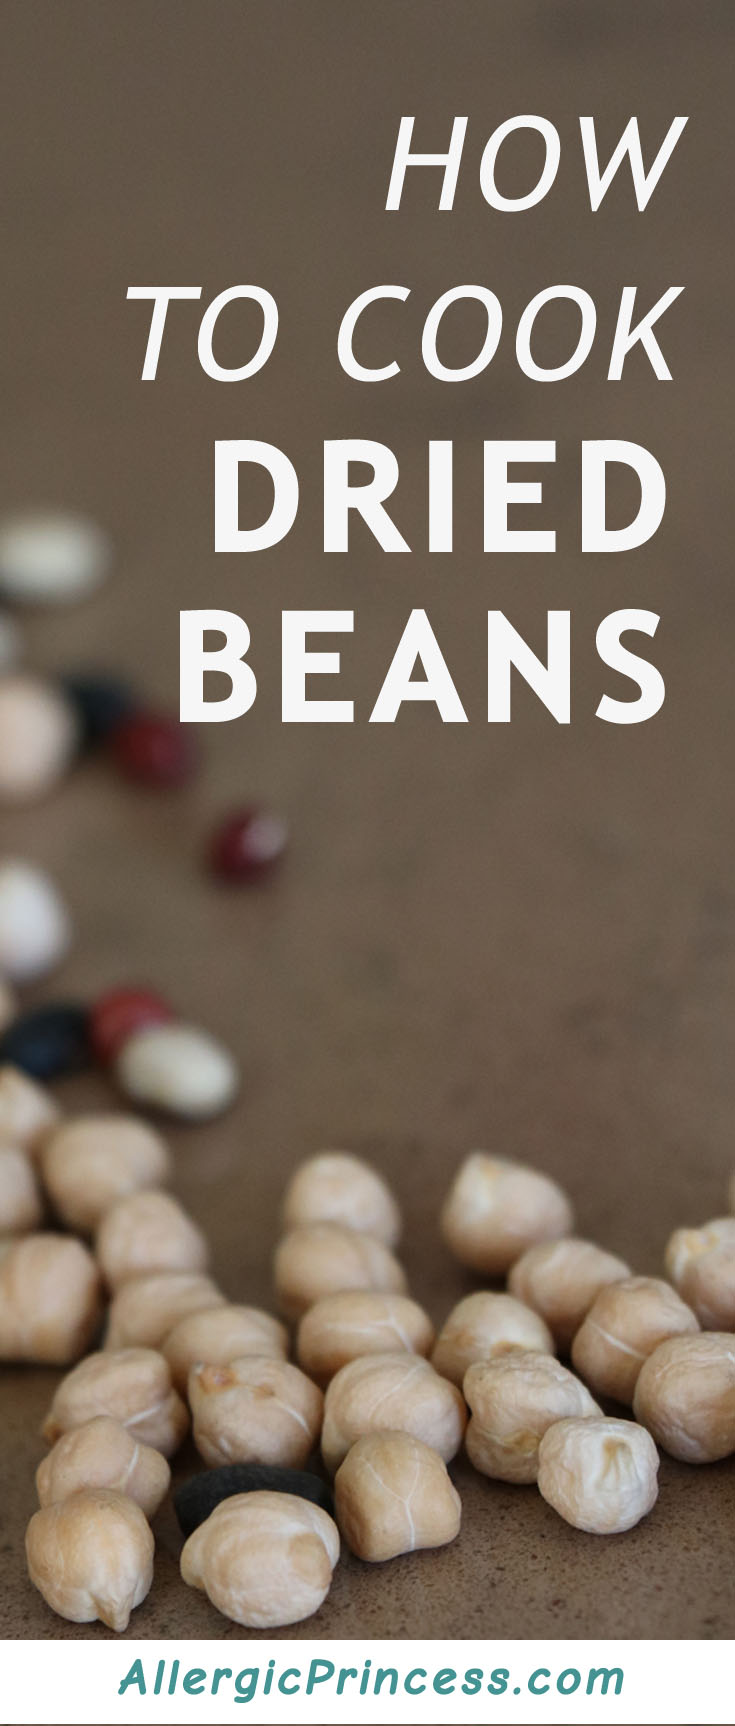 Don't let dried beans scare you off, cooking them is super easy!